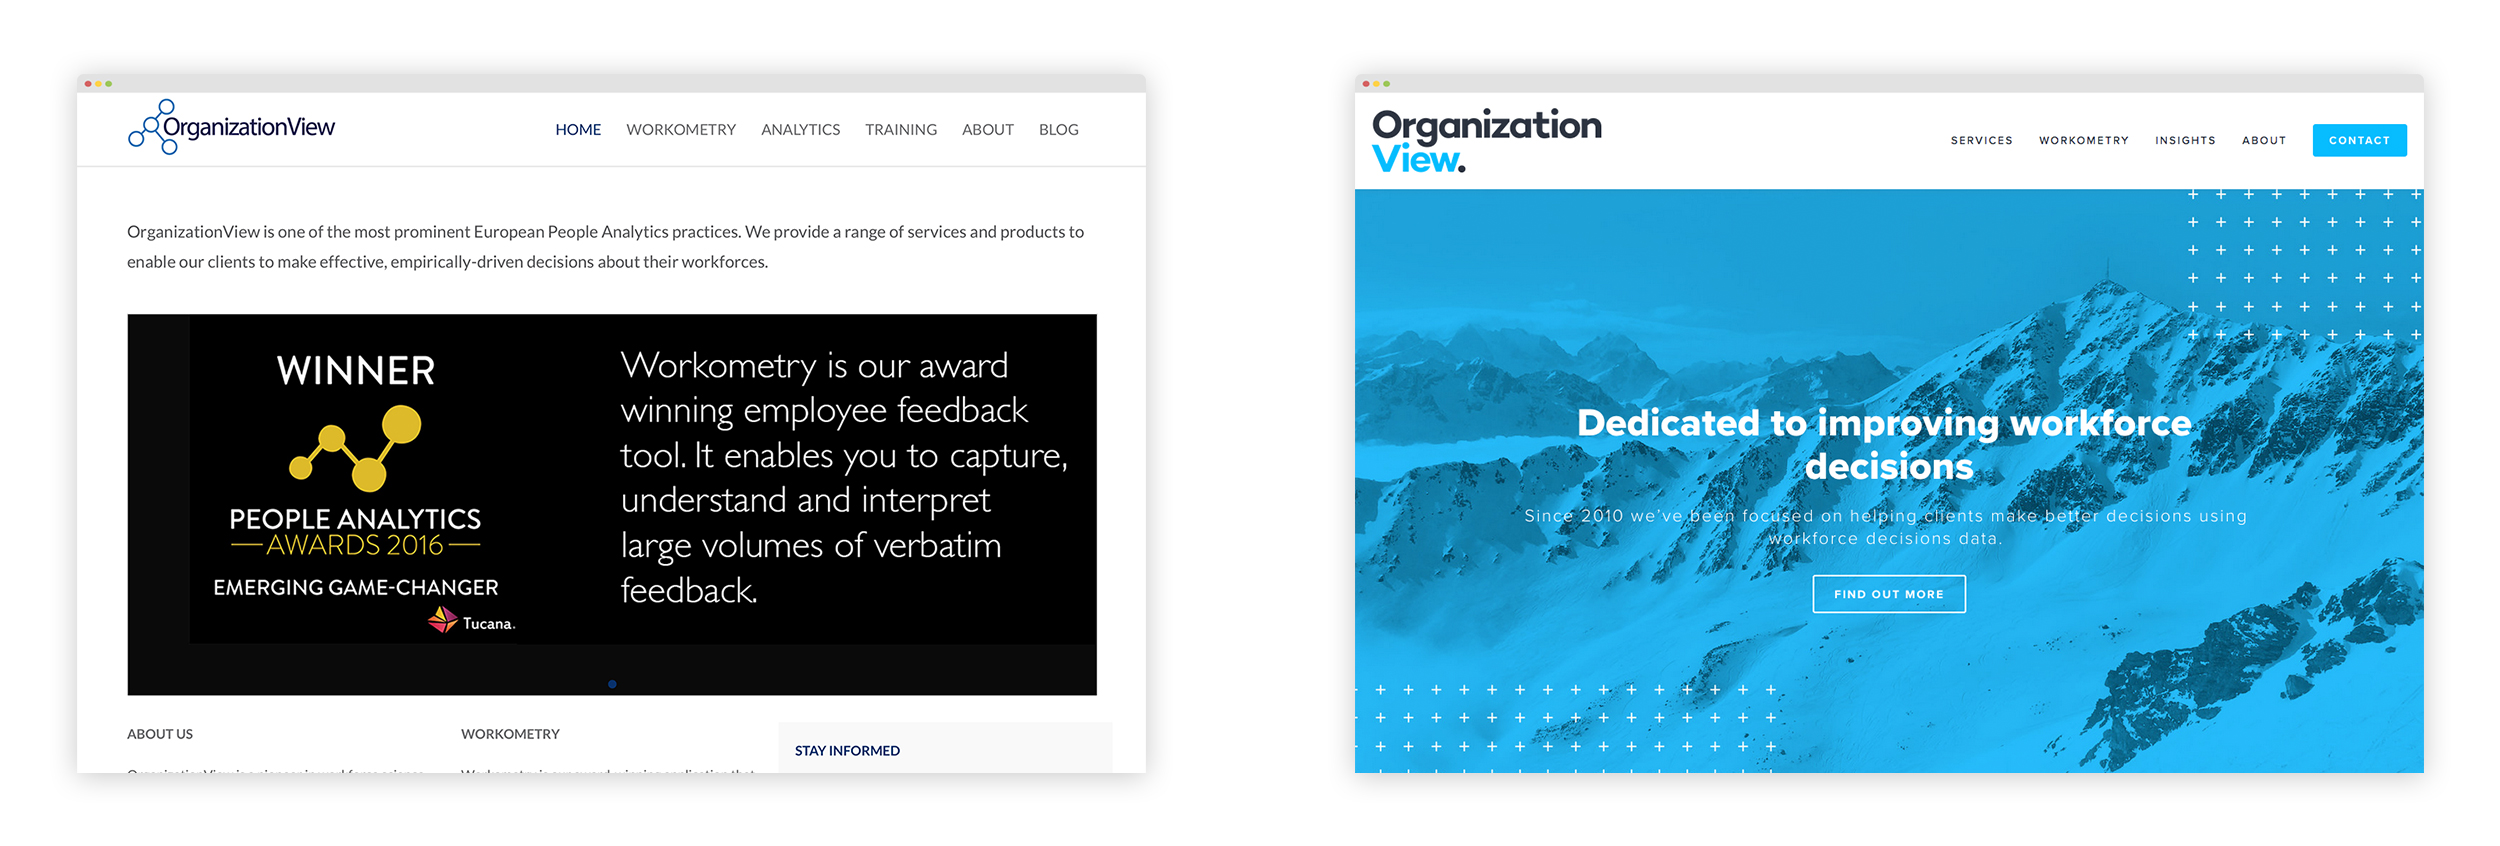 On the    left is the old    homepage for OrganizationView, on the    right is the new   , redesigned version.